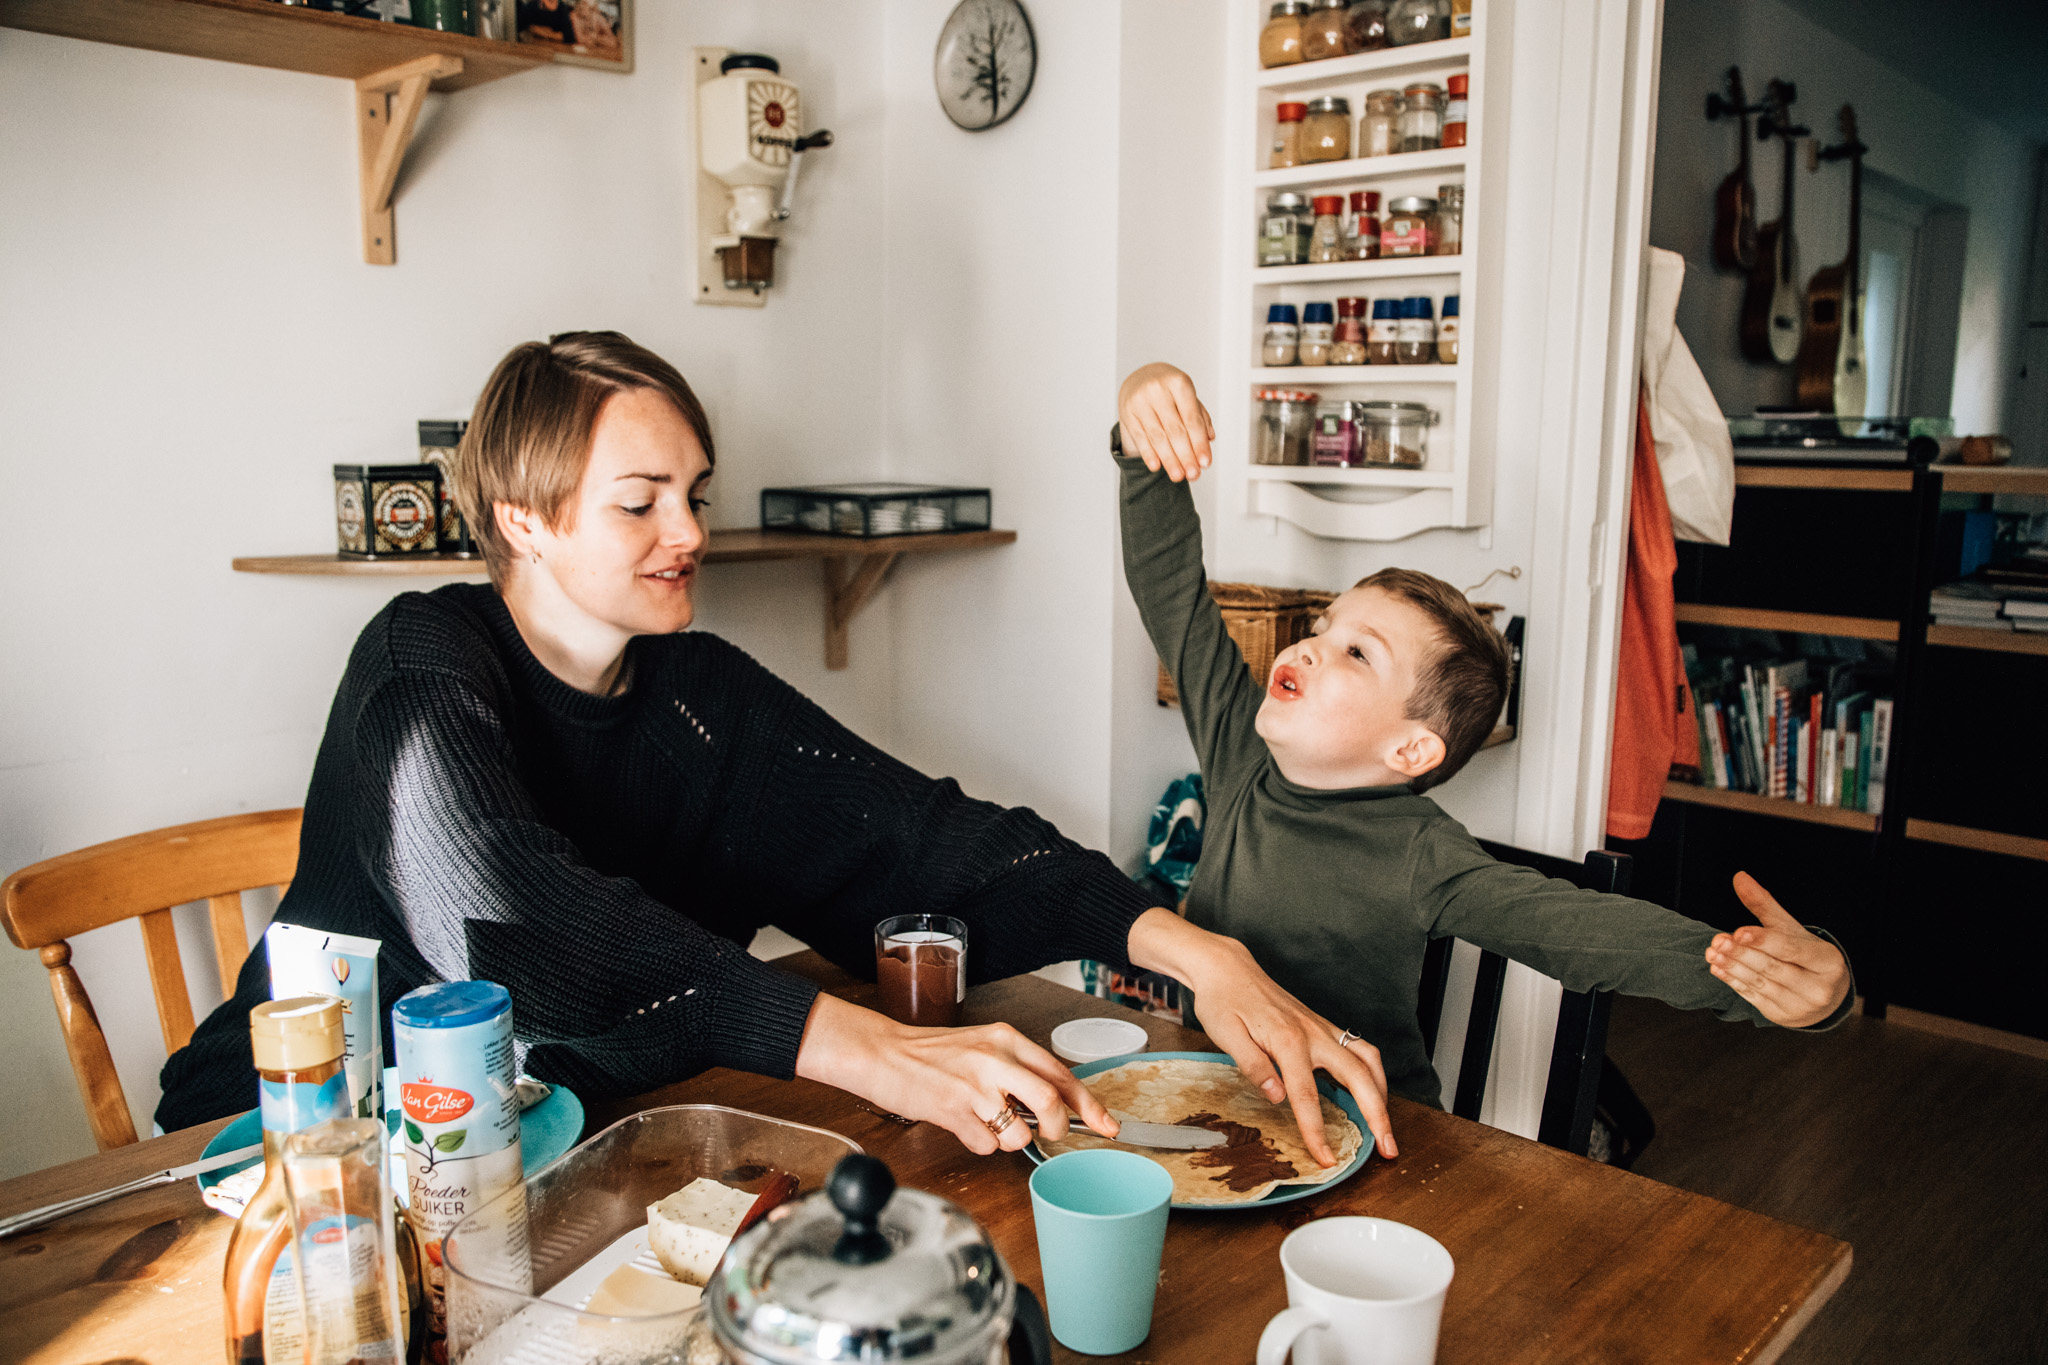 Things you can do during your family photoshoot: to have breakfast together: Mom and child having breakfast together in the kitchen. Kid has arms wide open, like talking of a big explosion while his mom is spreading nutella on his pannenkoek